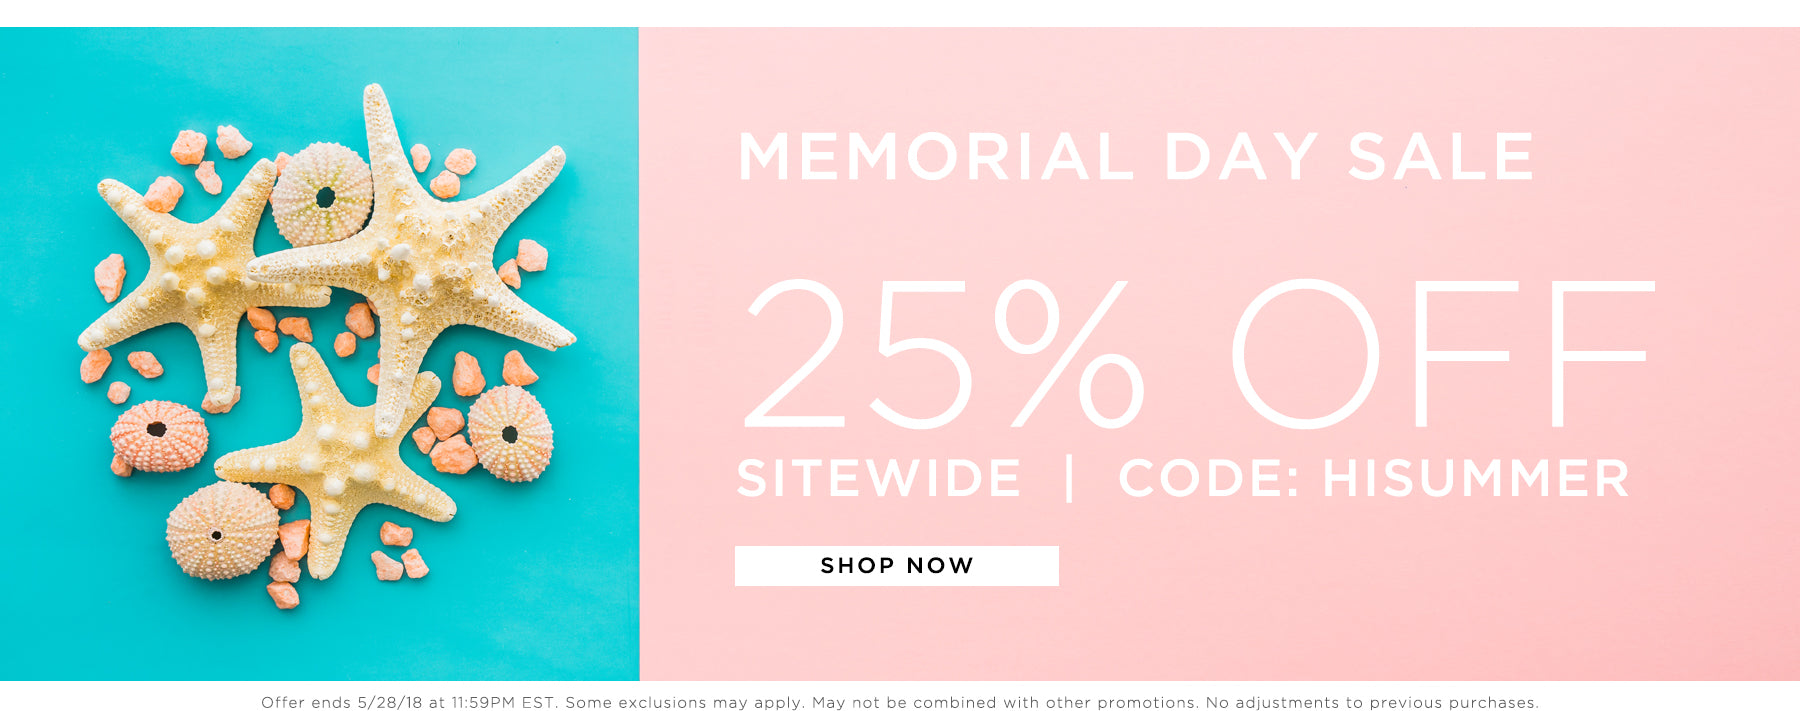 Memorial Day Sale. 25% Off Sitewide - Code: HISUMMER